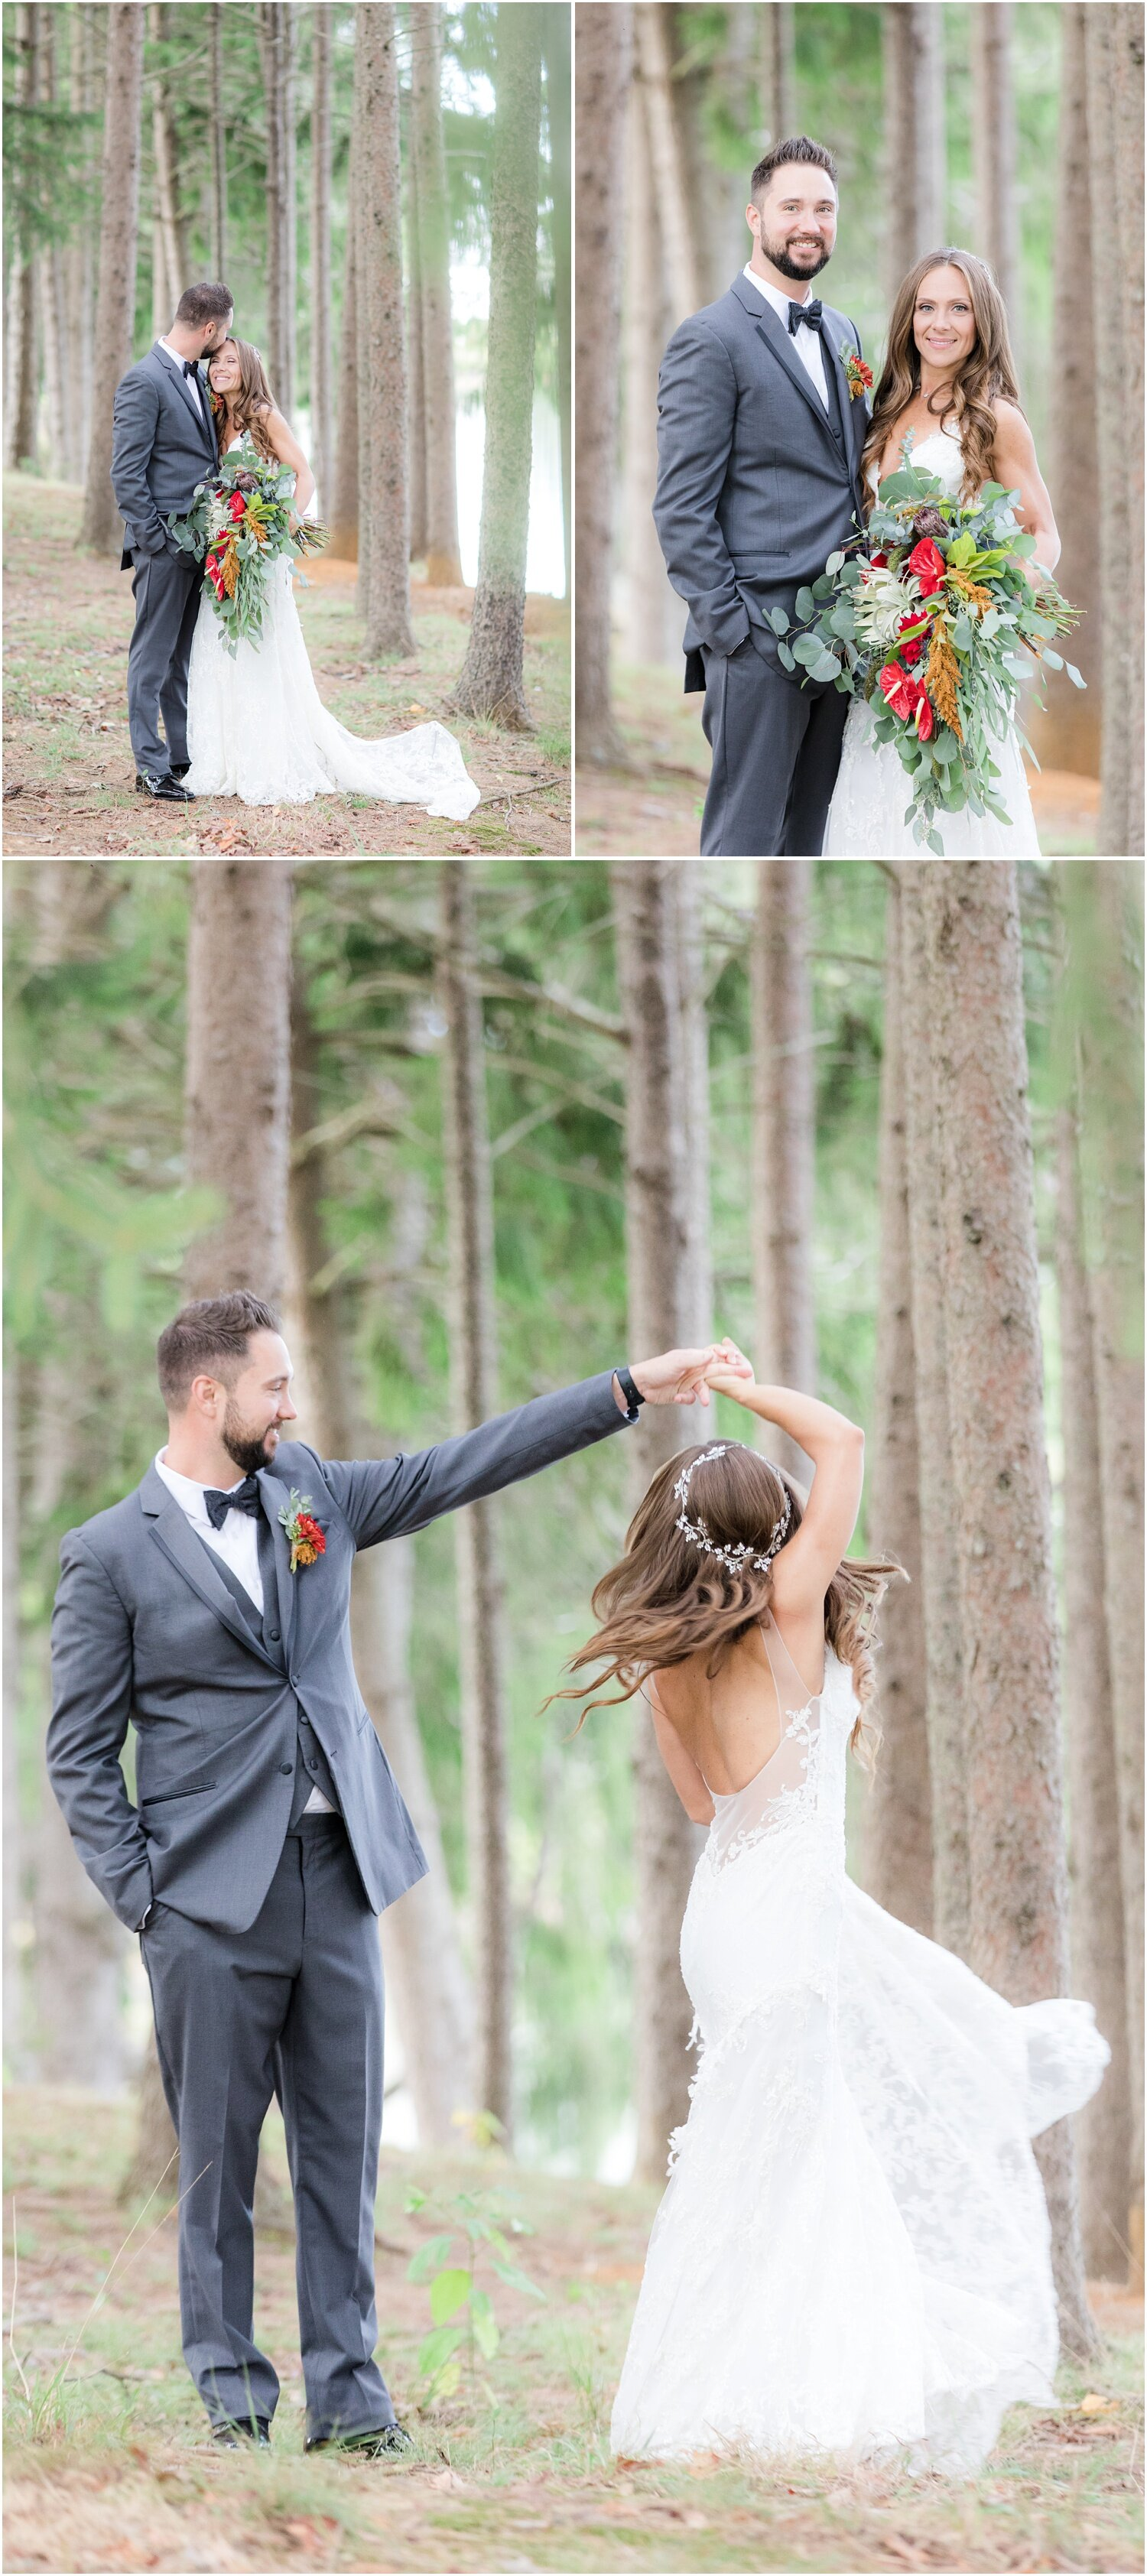 whimsical forrest wedding photos in New jersey.